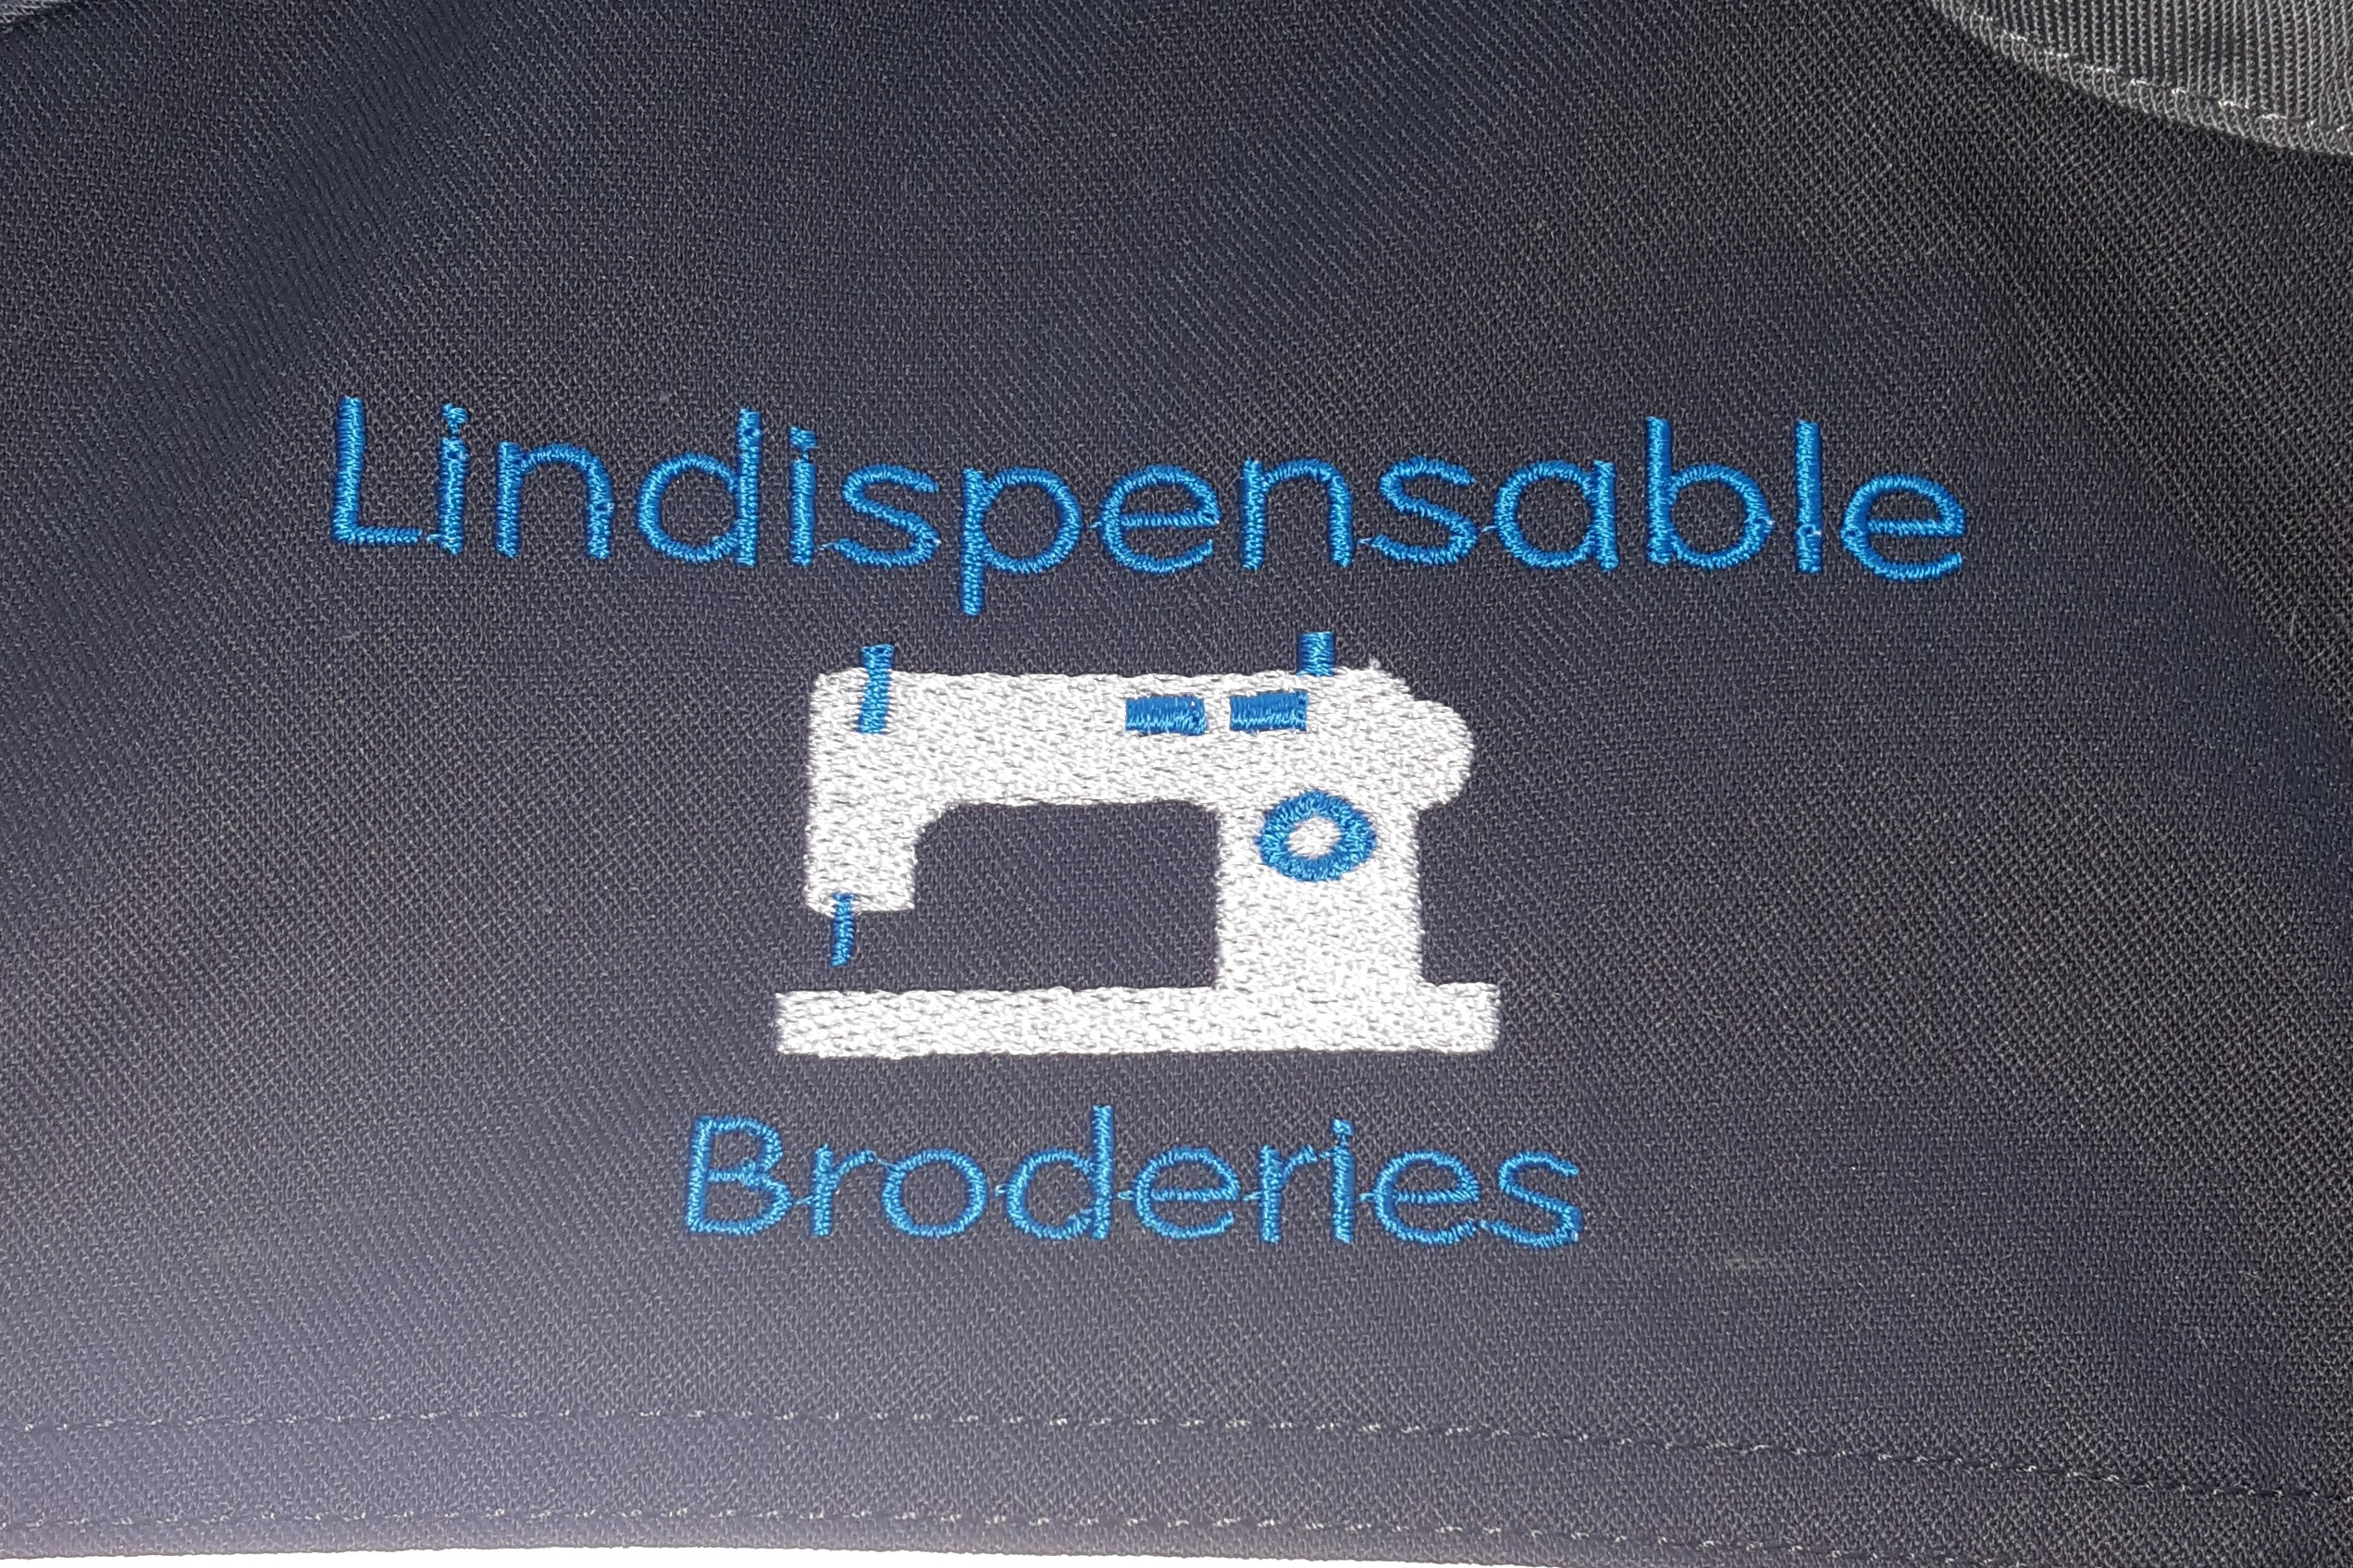 Lindispensable_Broderie.jpg